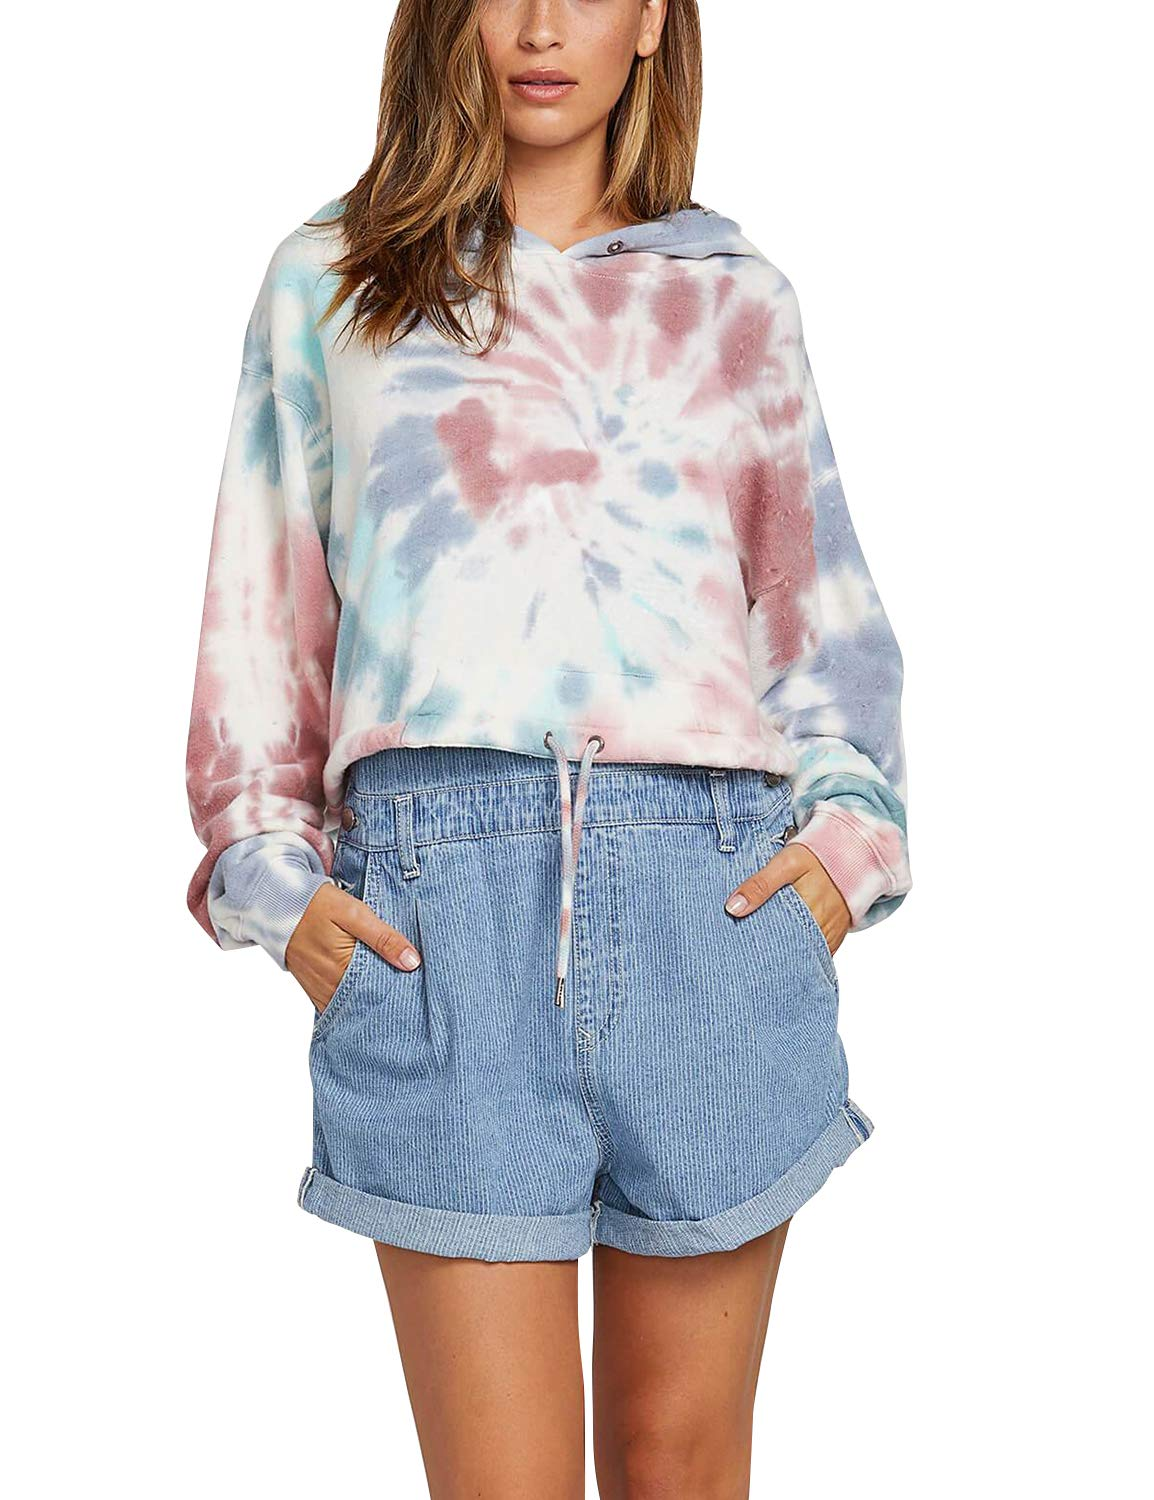 Blooming Jelly Womens Long Sleeve Tie Dye Pullover Hoodies Crop Top